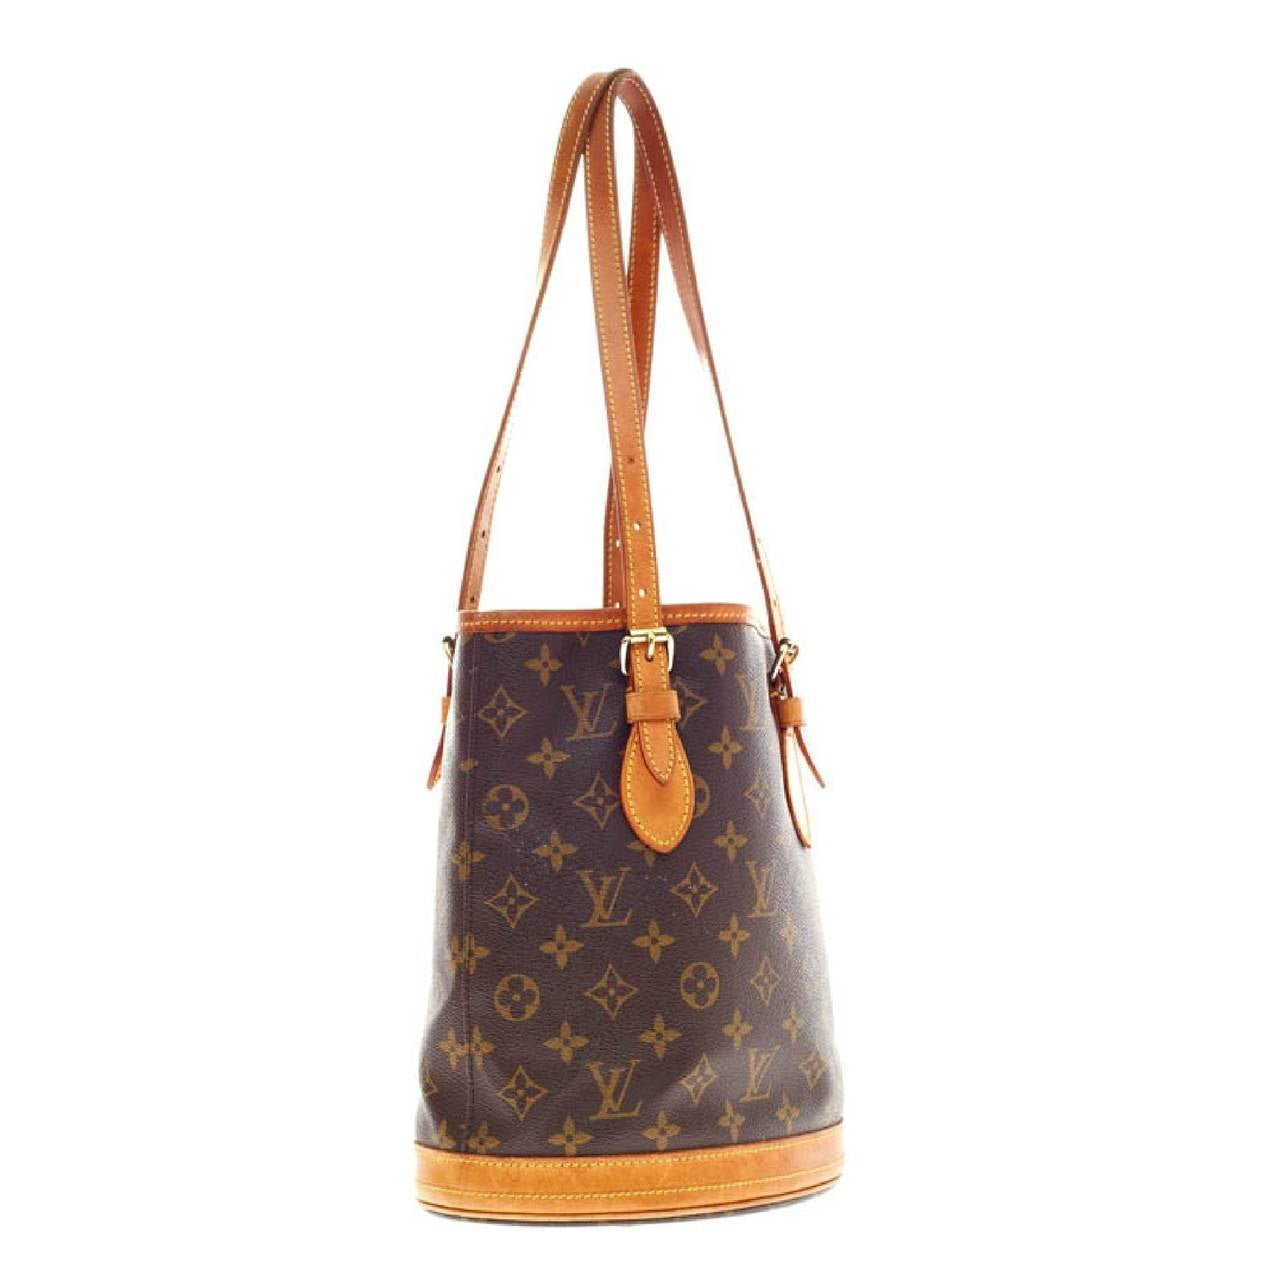 Louis Vuitton Bucket Bag Canvas Pe In Good Condition For New York Ny